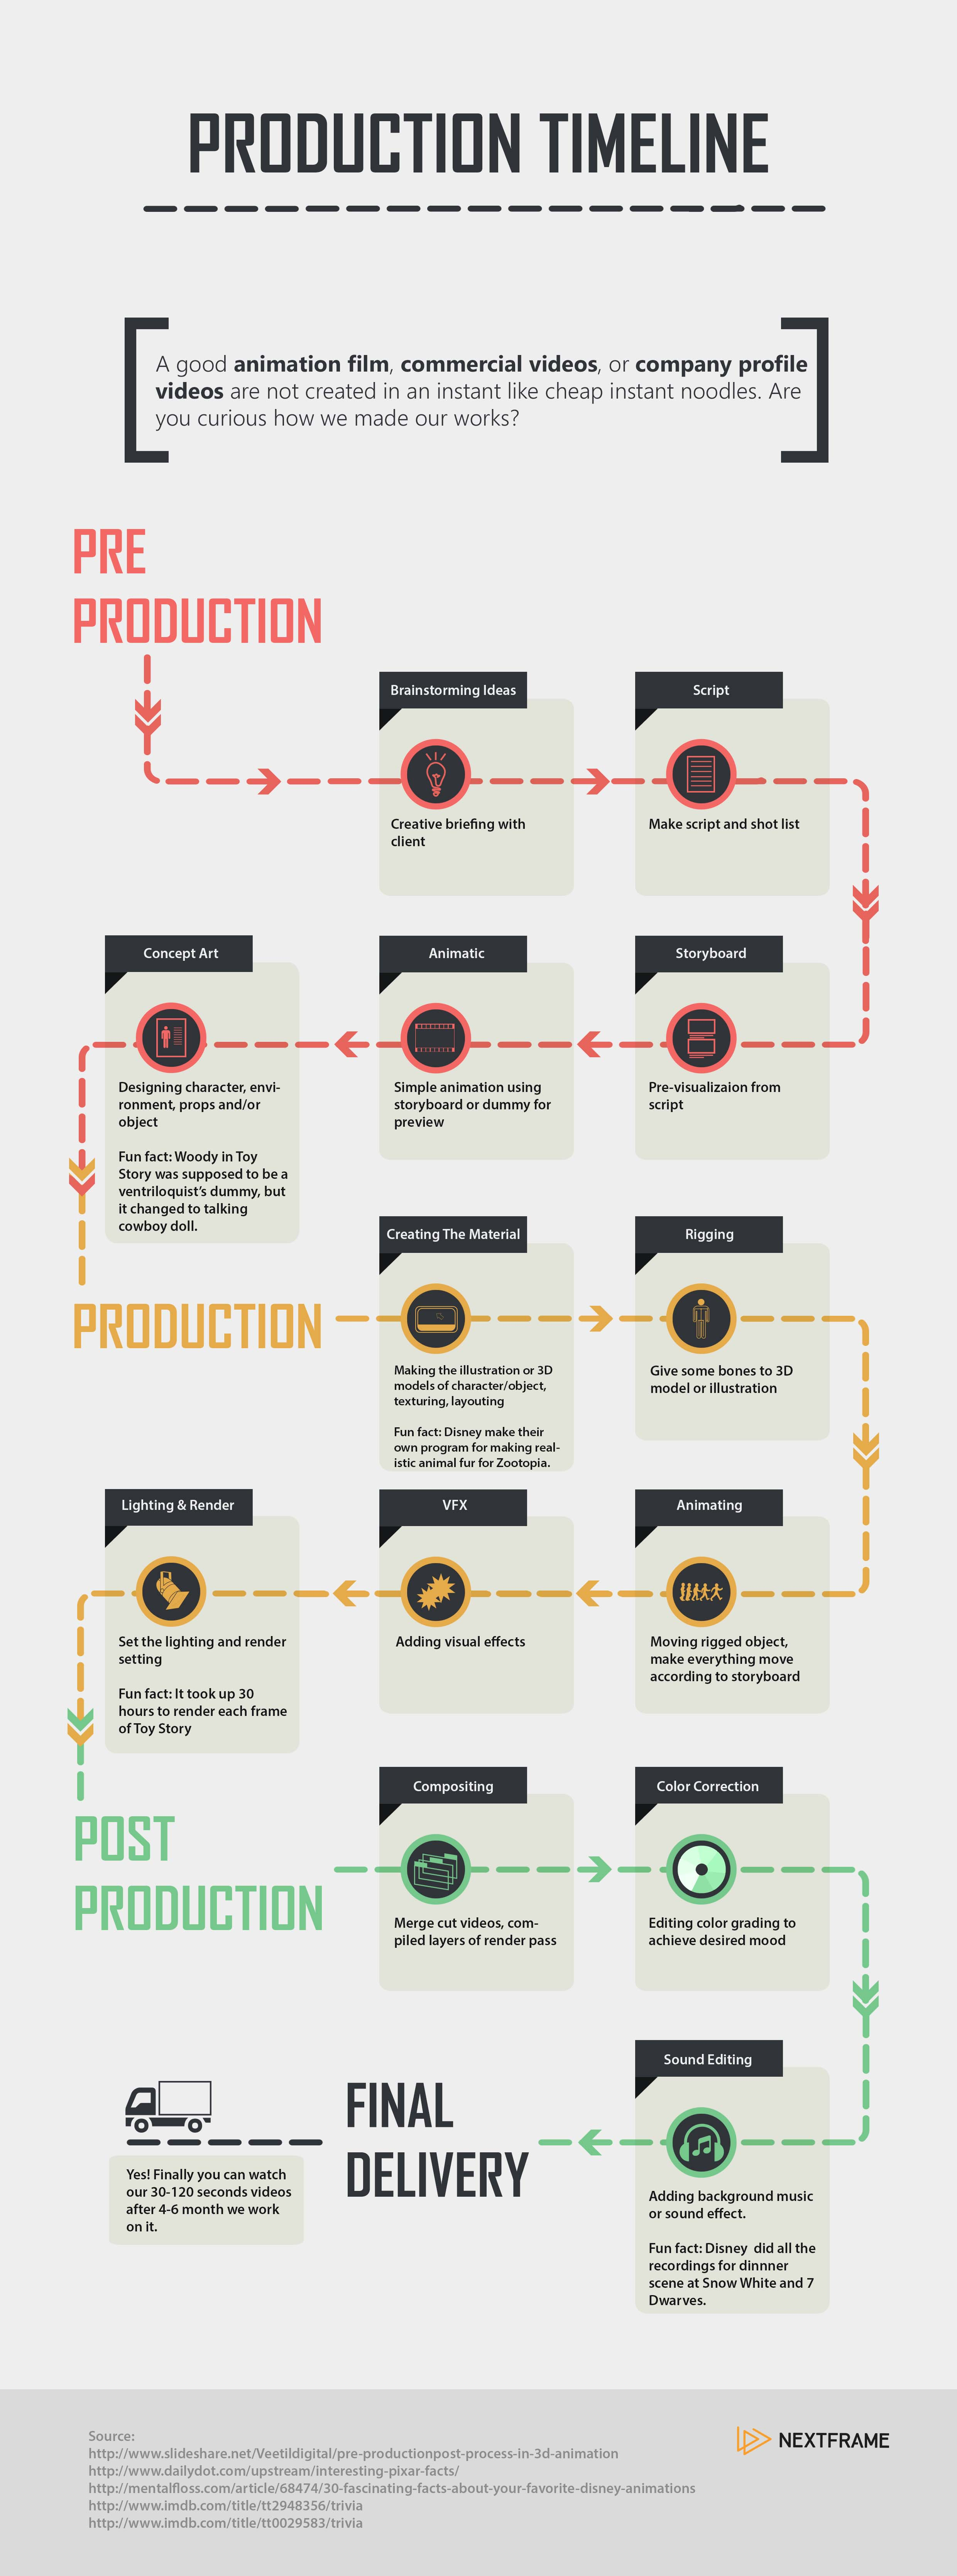 revisi_infographic